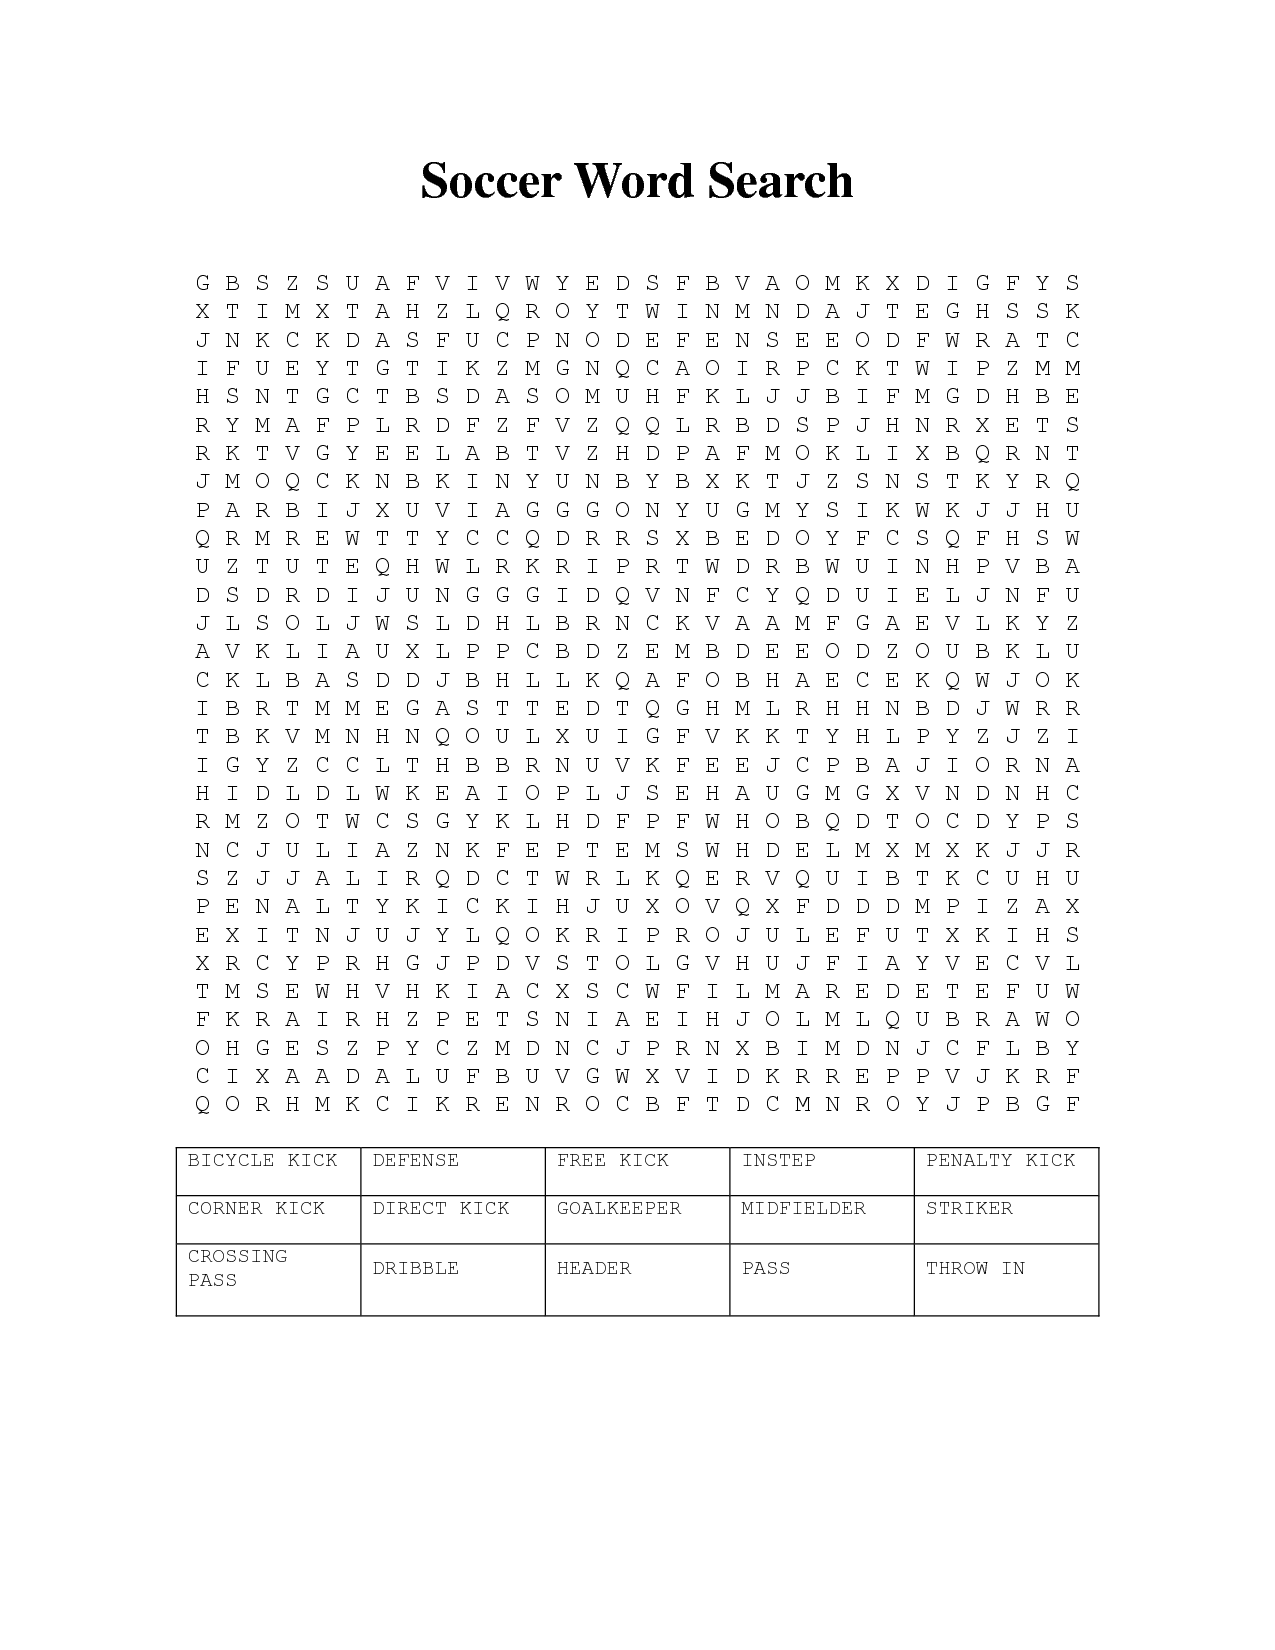 soccer-word-search-1